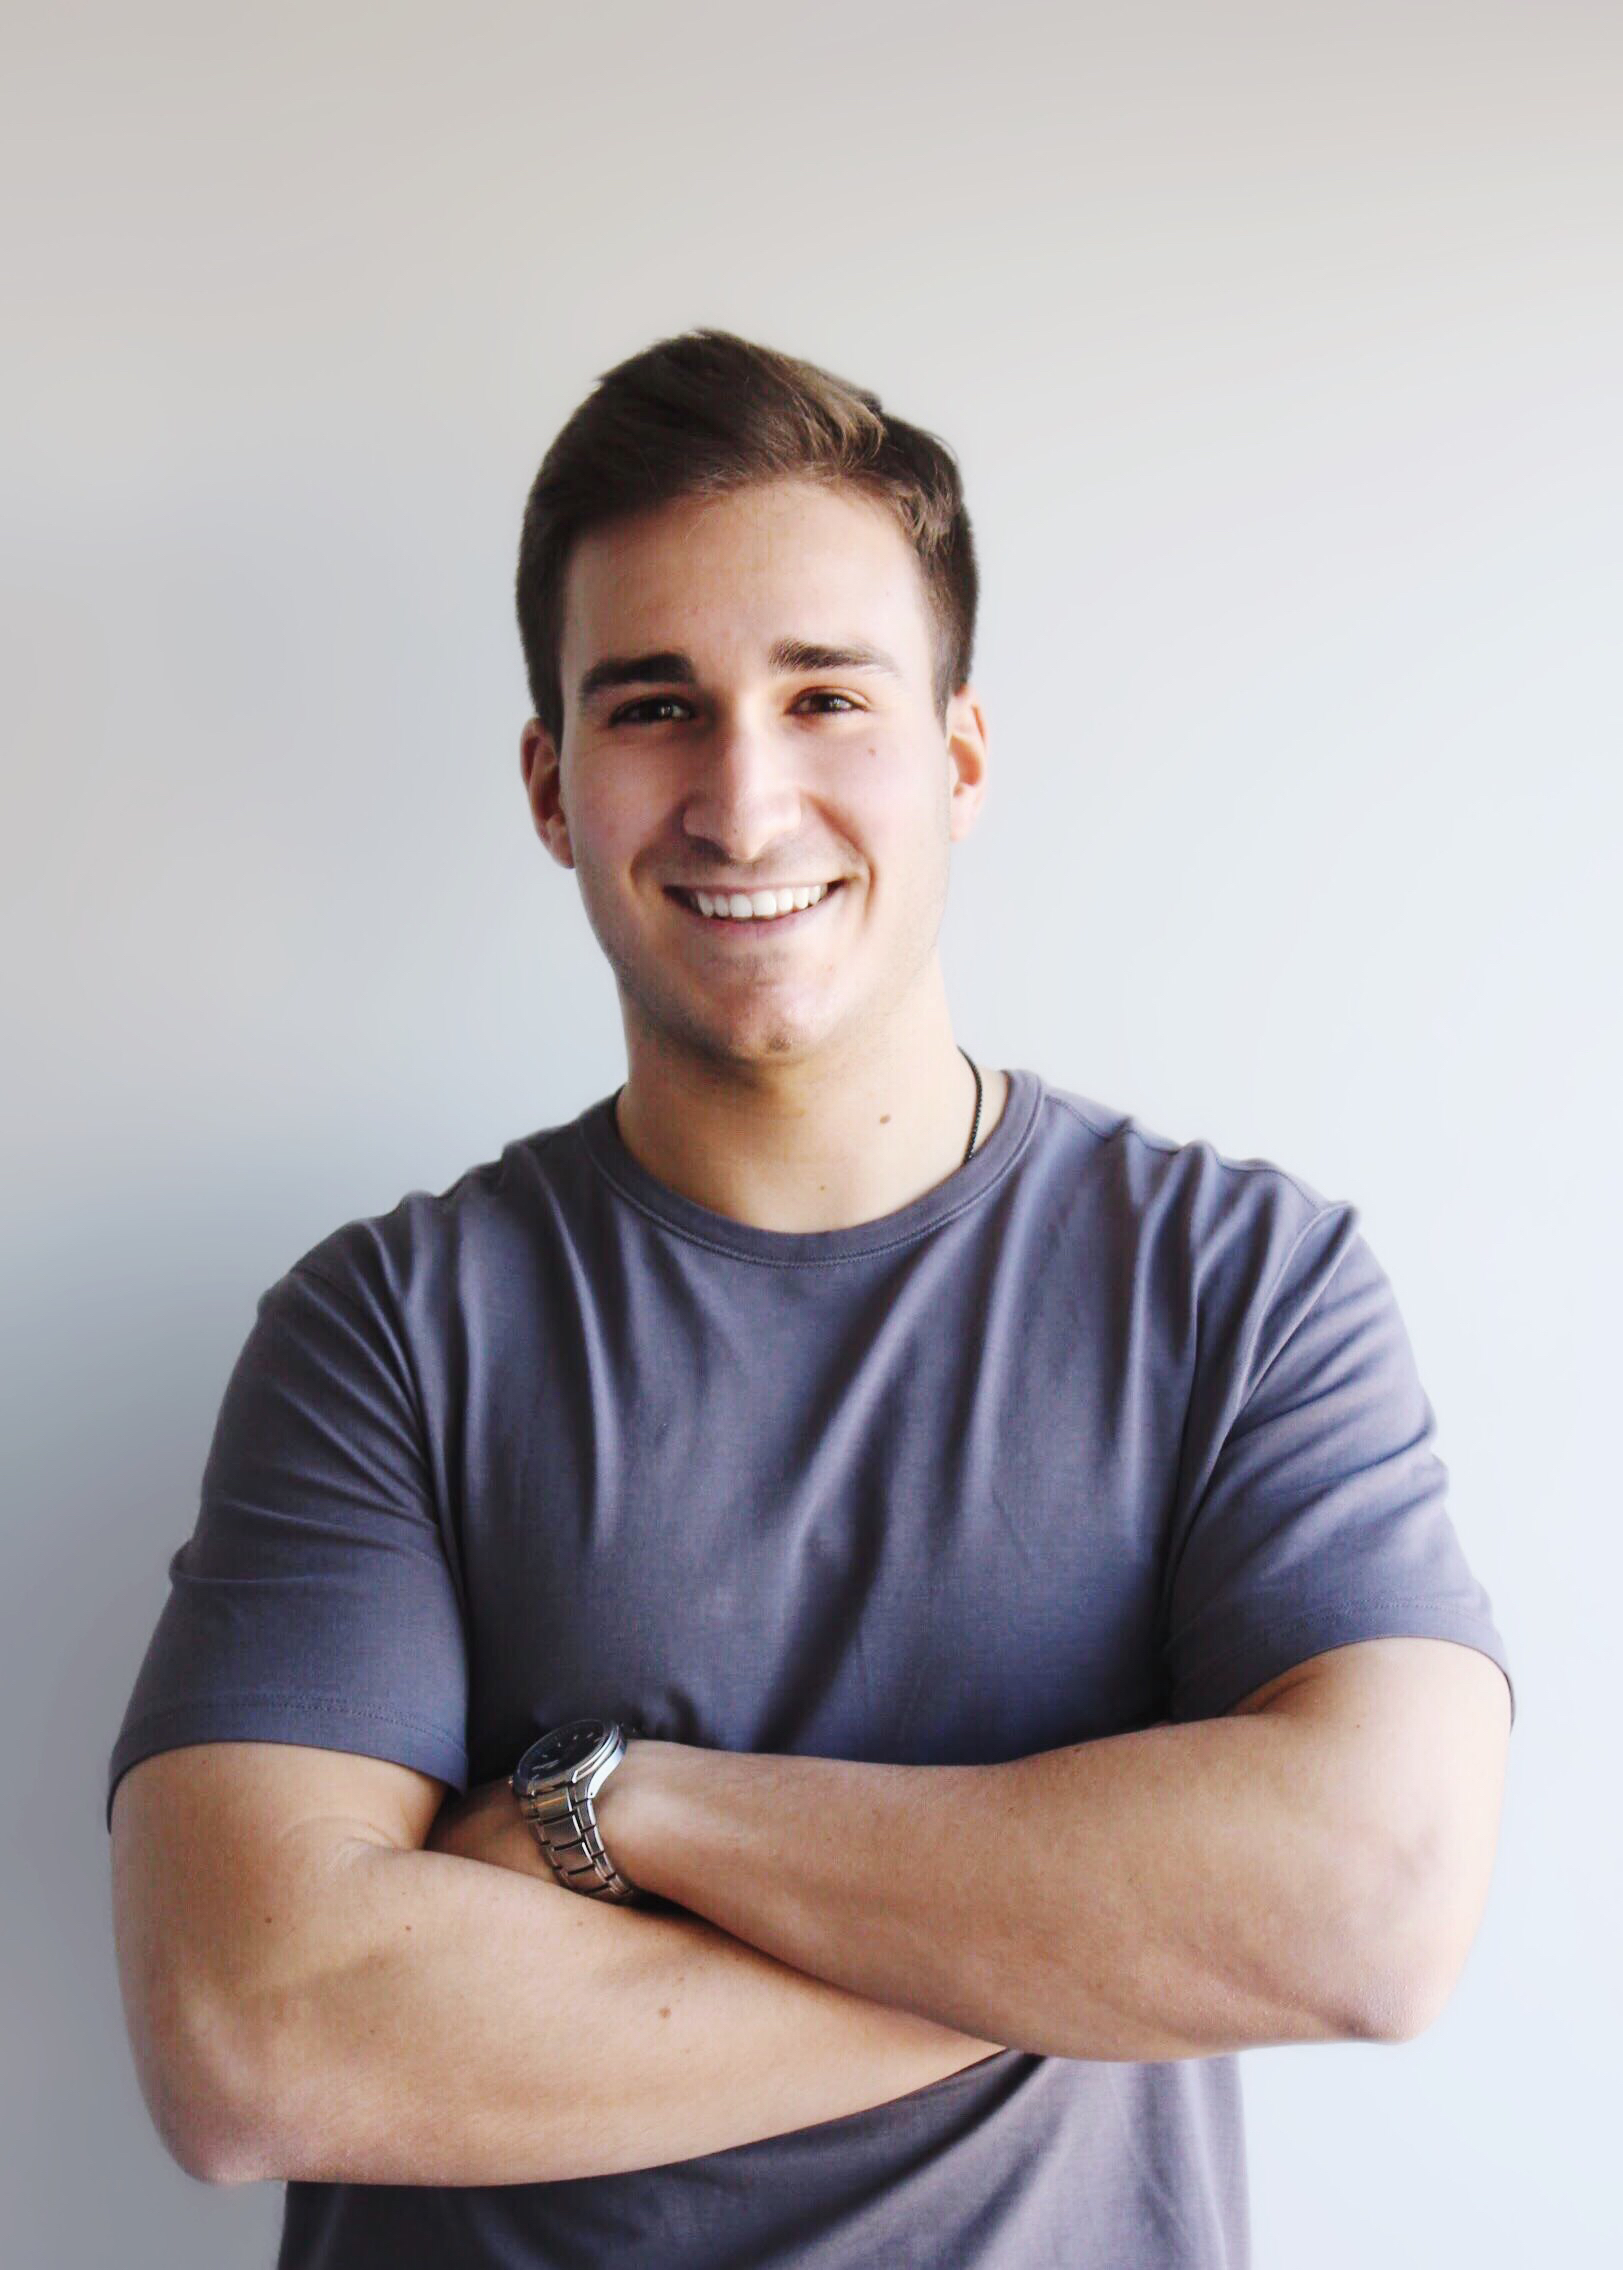 Dylan Ian Gambardella - 23-years-oldDuke University '17Co-founder, Next Gen